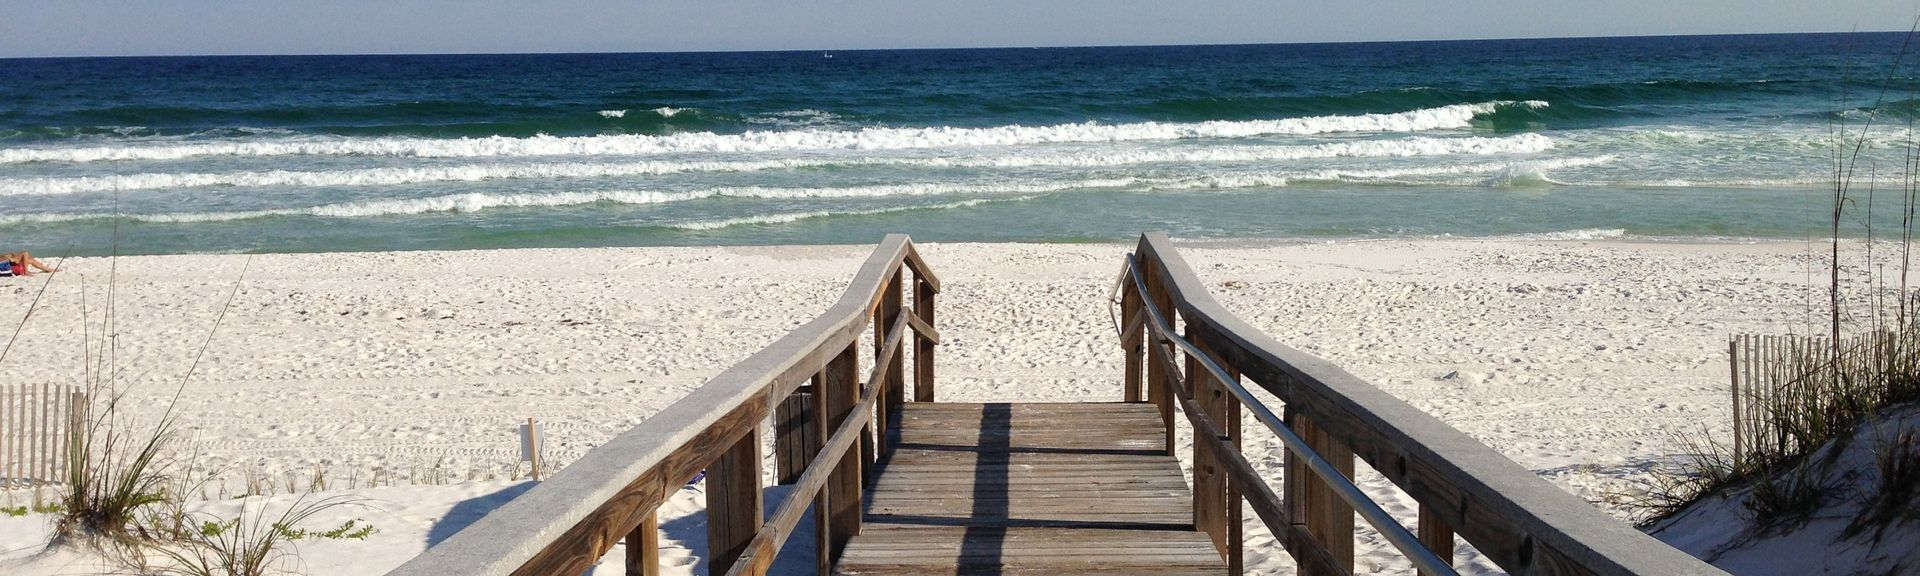 Santa Rosa Villas, Pensacola Beach, Florida, United States of America